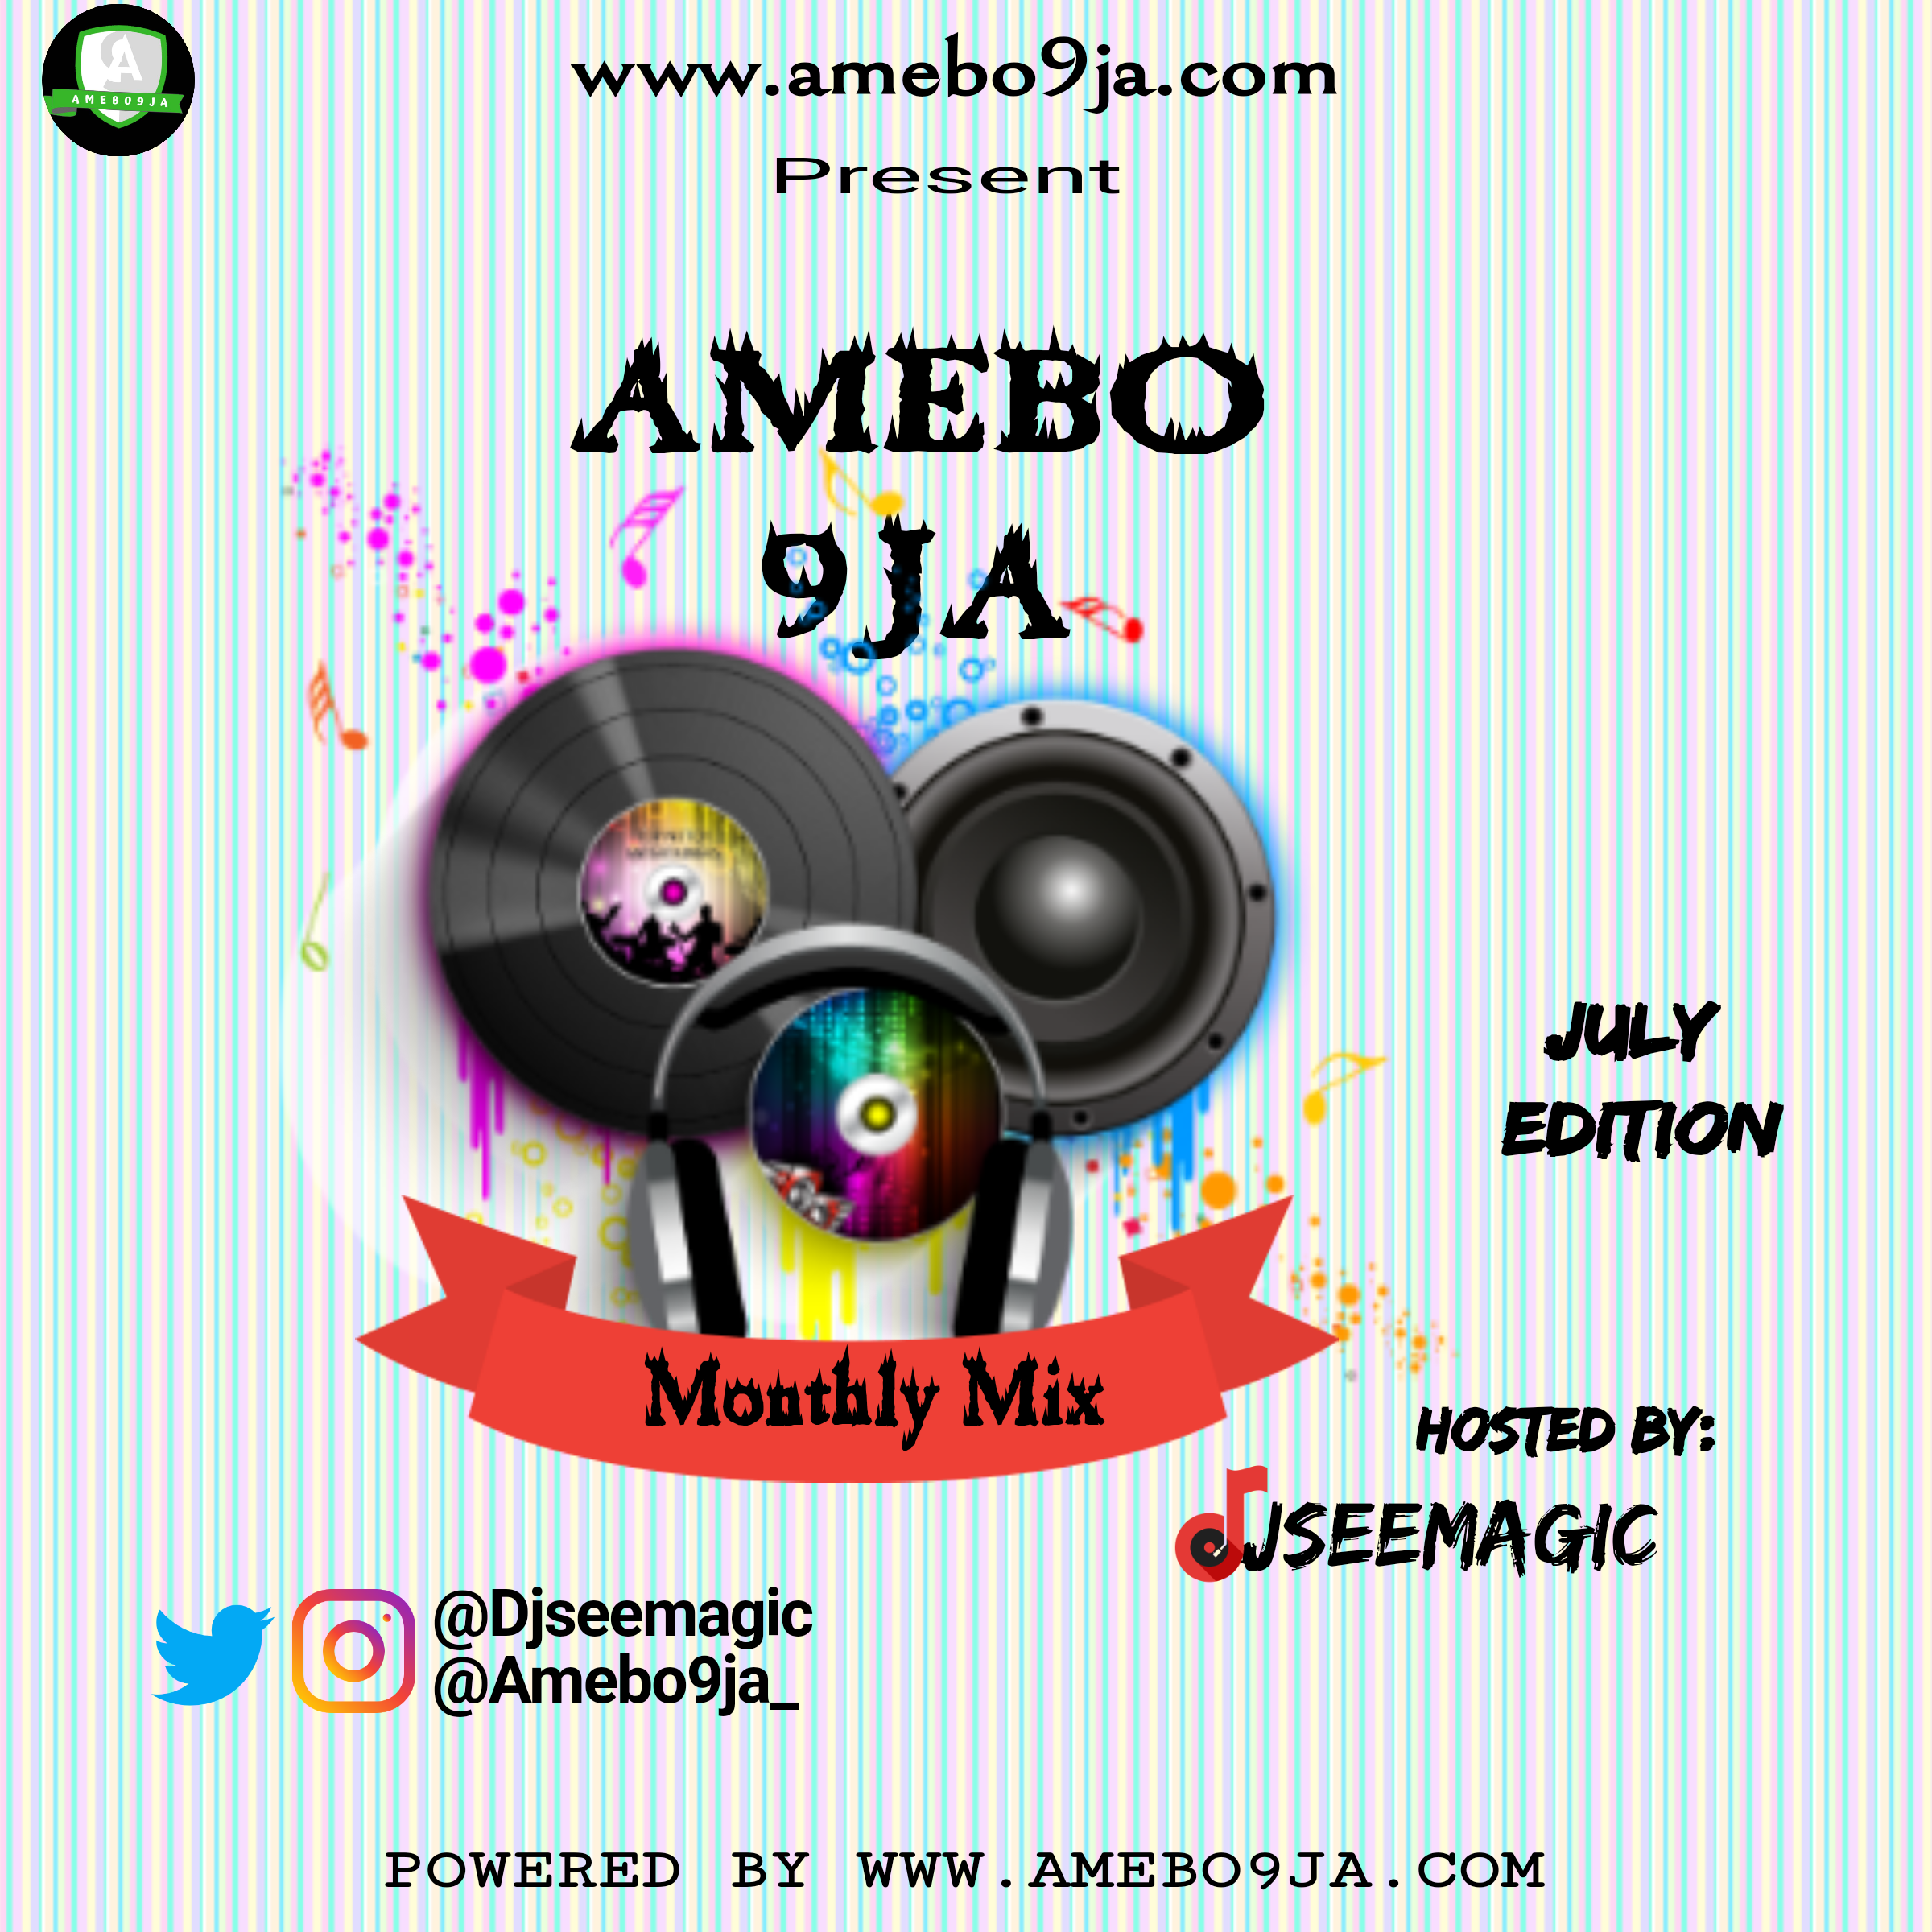 DJseemagic - Amebo9ja Monthly Mix (July Edition)